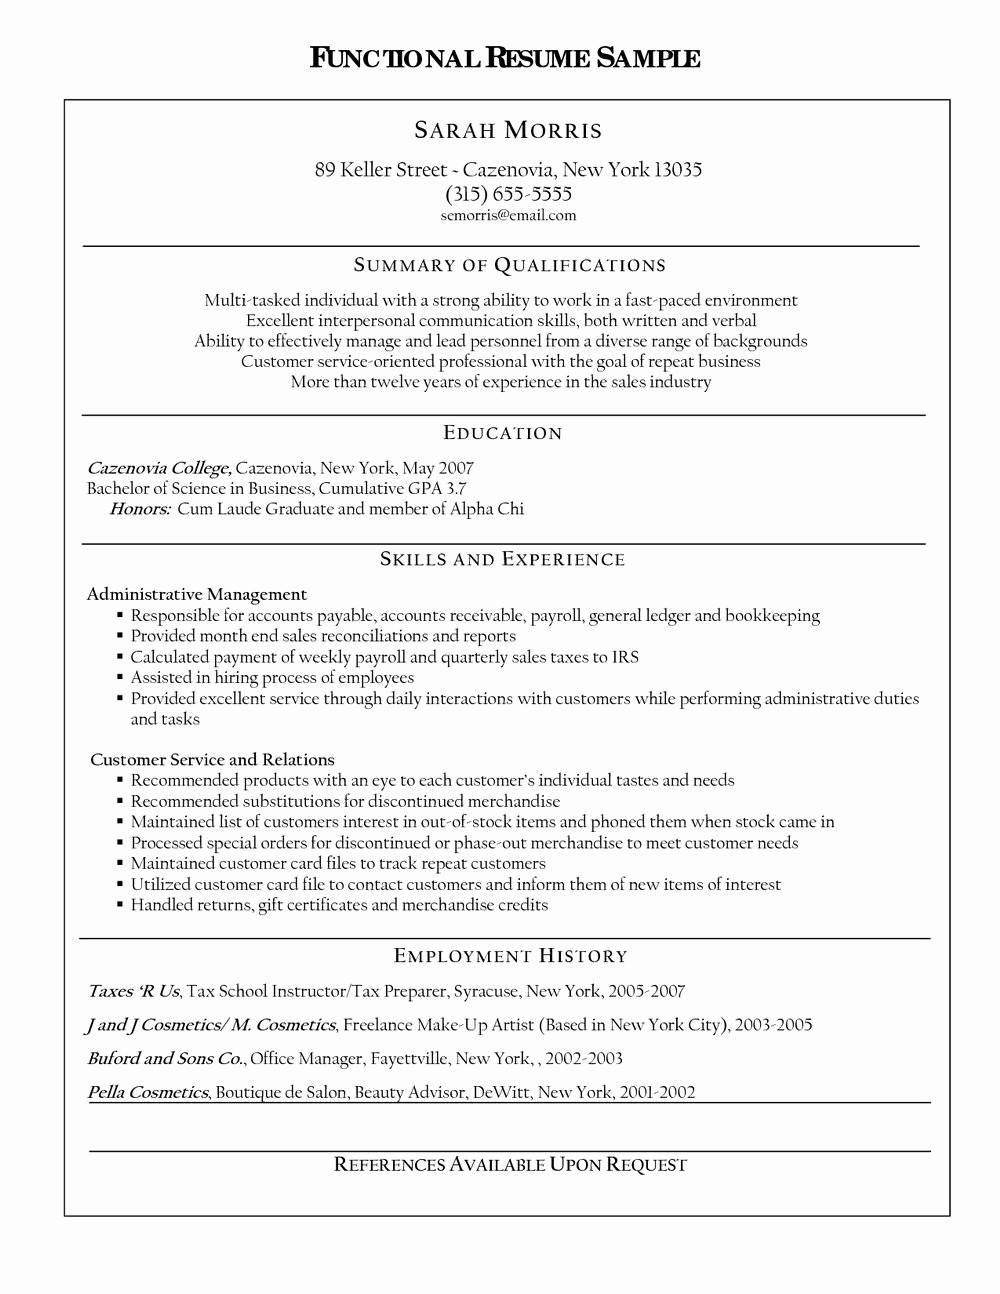 Free Functional Resume Template 2018 Inspirational Functional Resume format Free